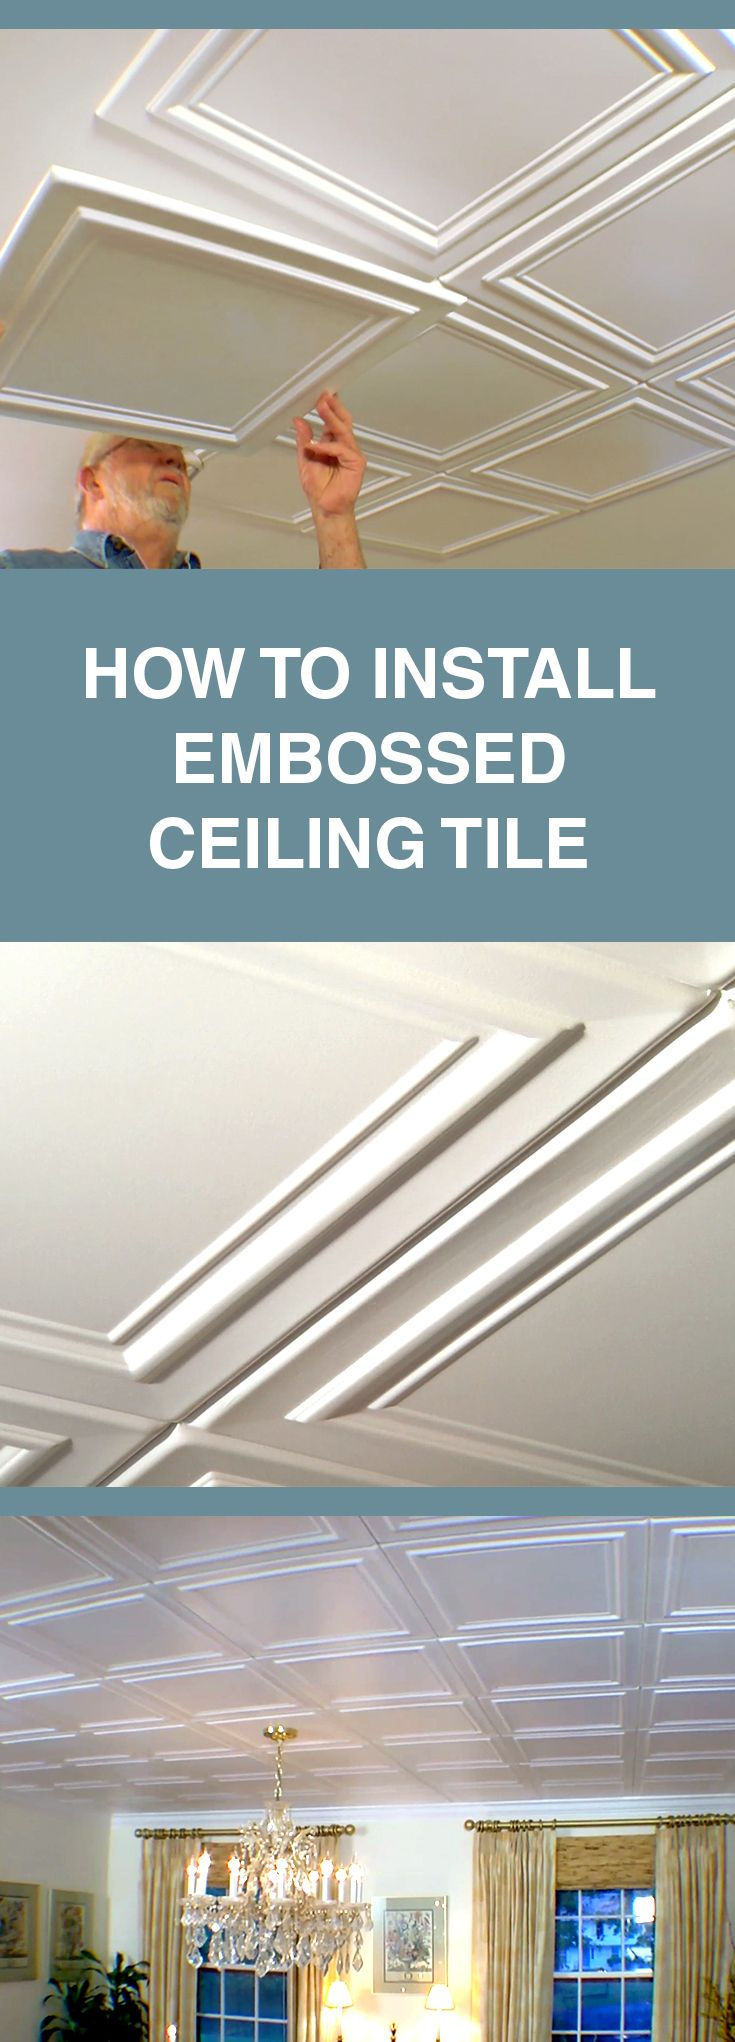 Image By Ron Hazelton On Ceilings Embossed Ceiling Tiles Ceiling Installation